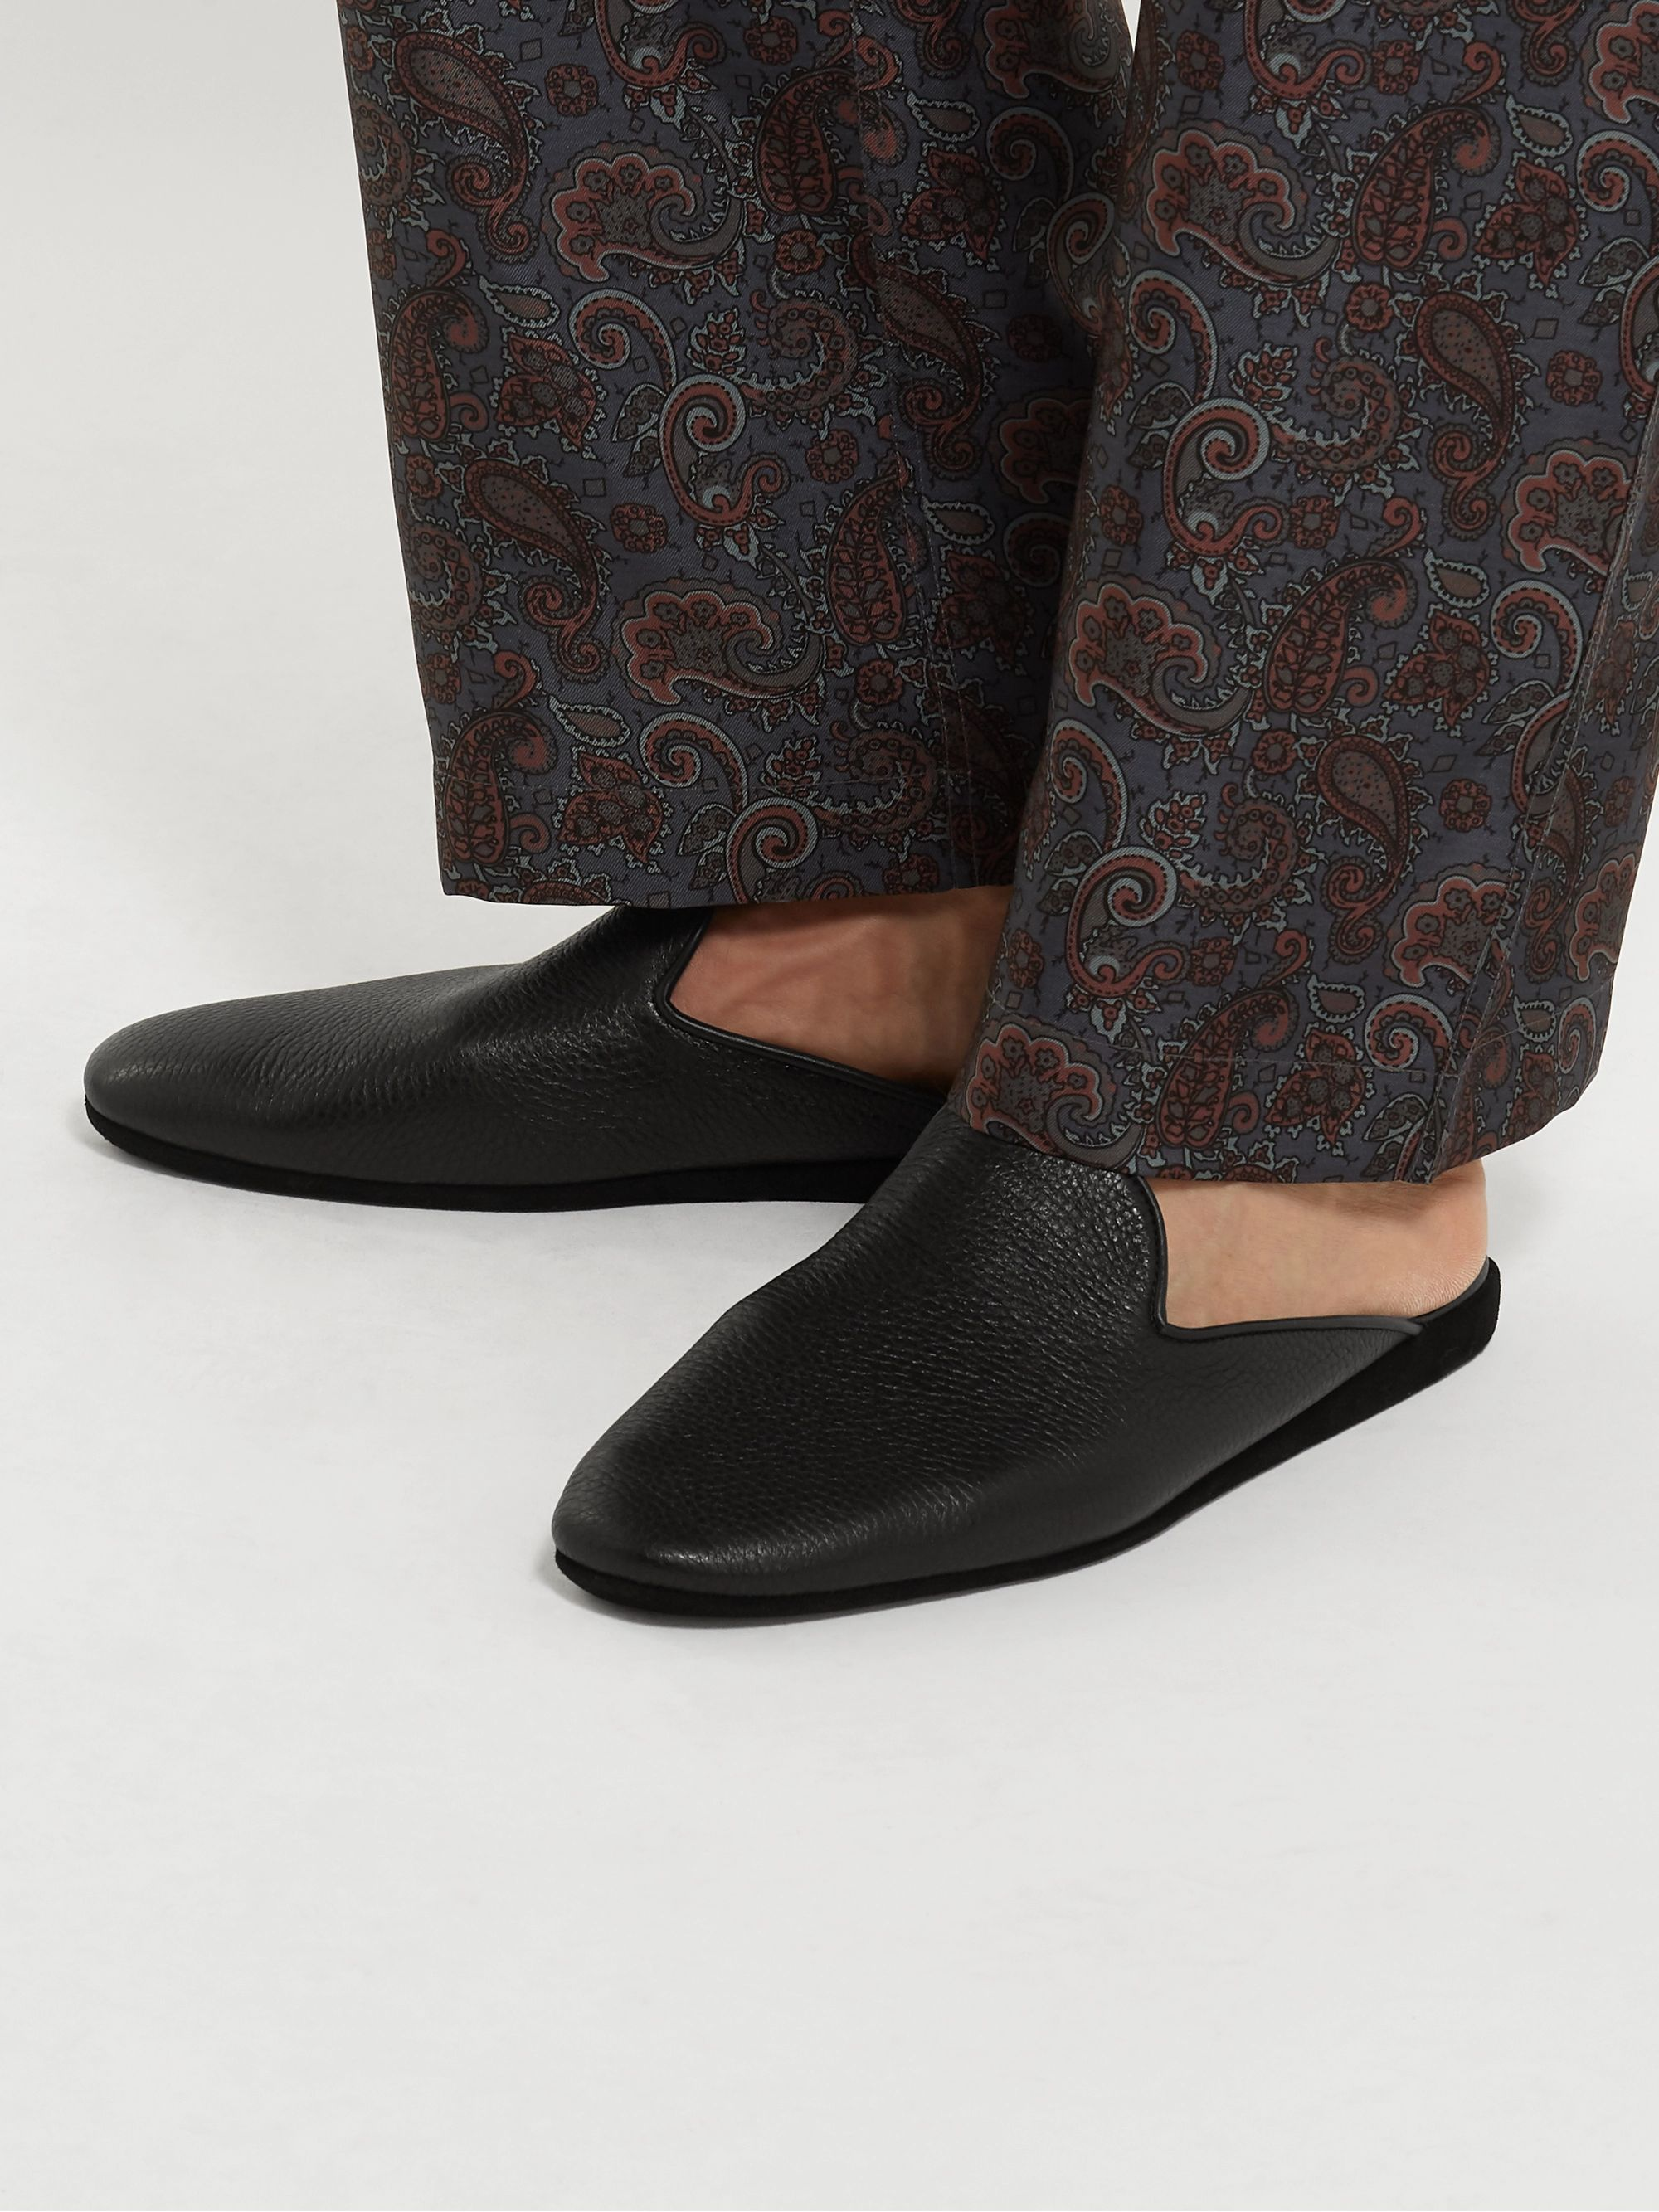 Sulka Full-Grain Leather Slippers